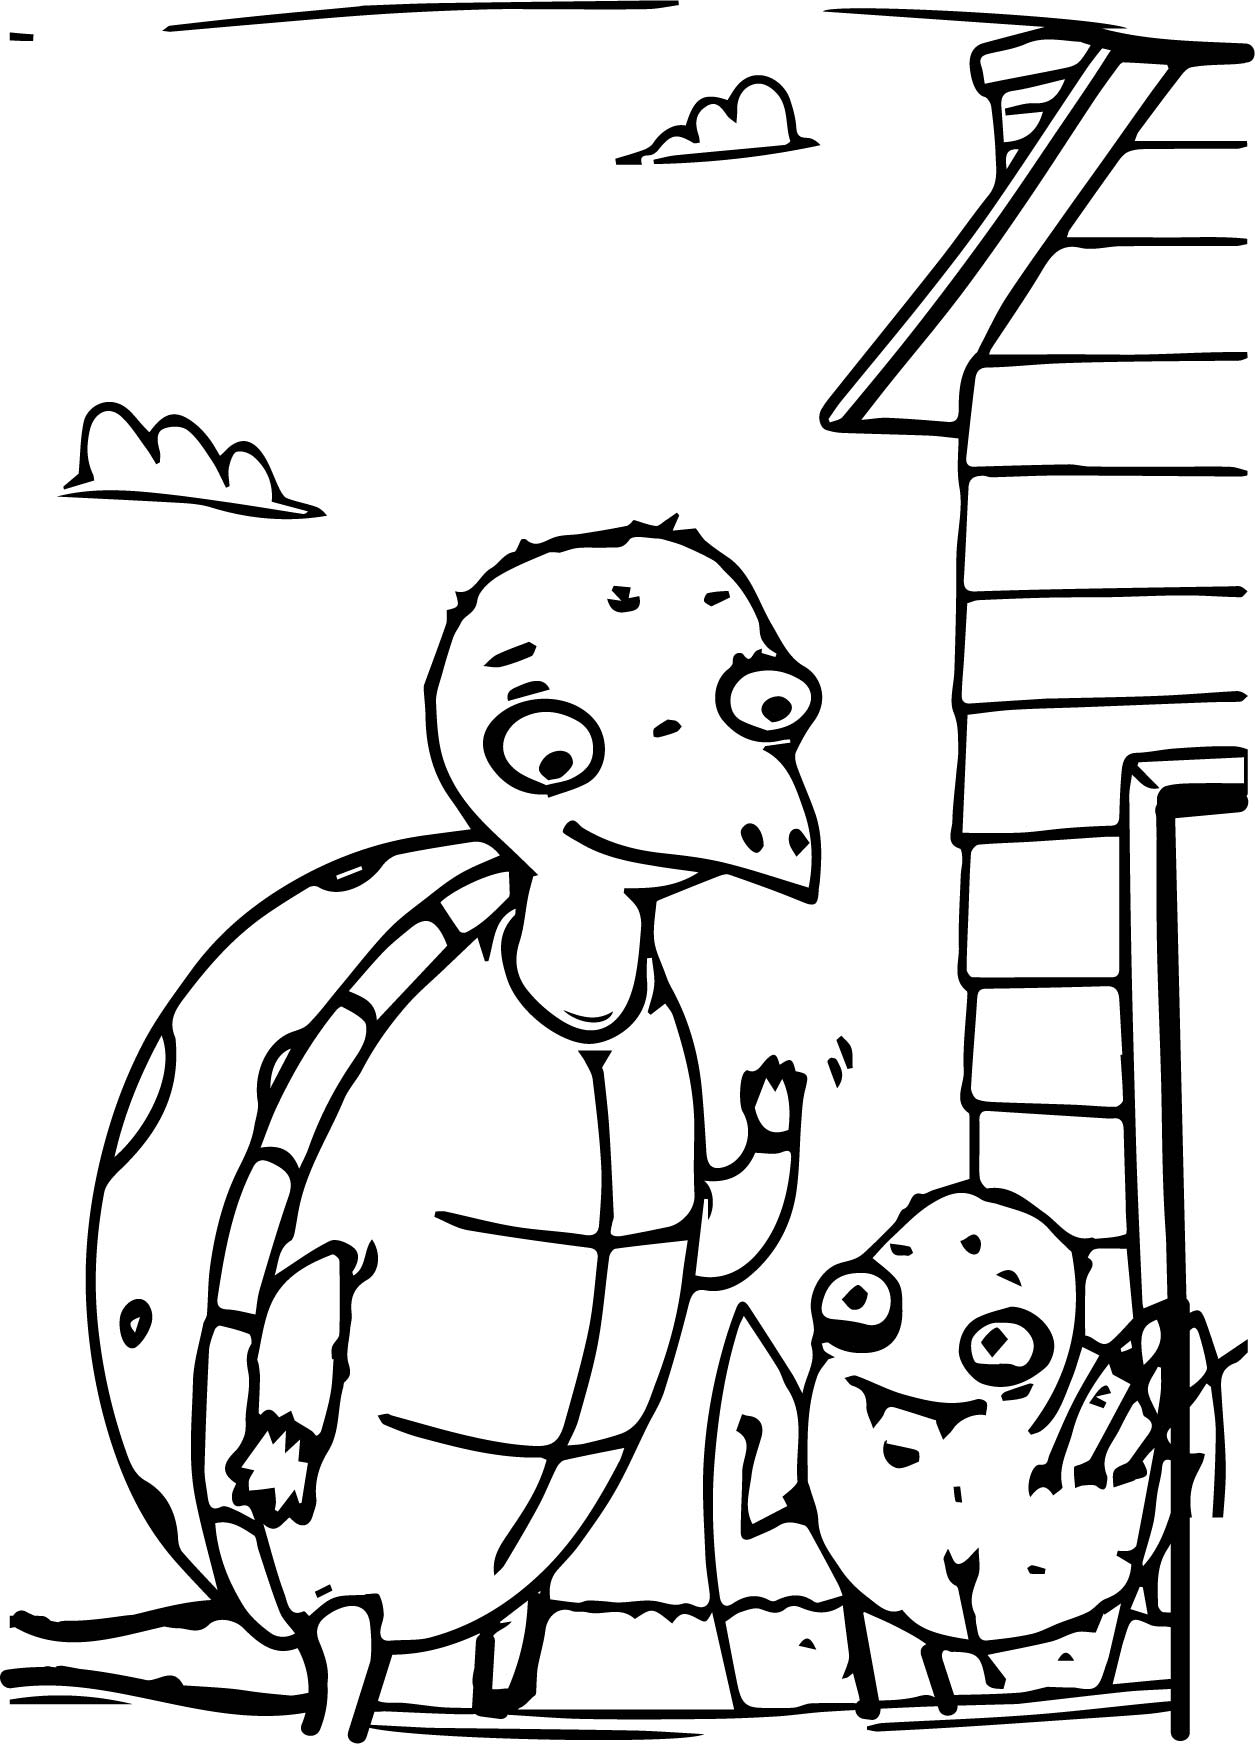 Anansi family coloring page for Anansi the spider coloring pages